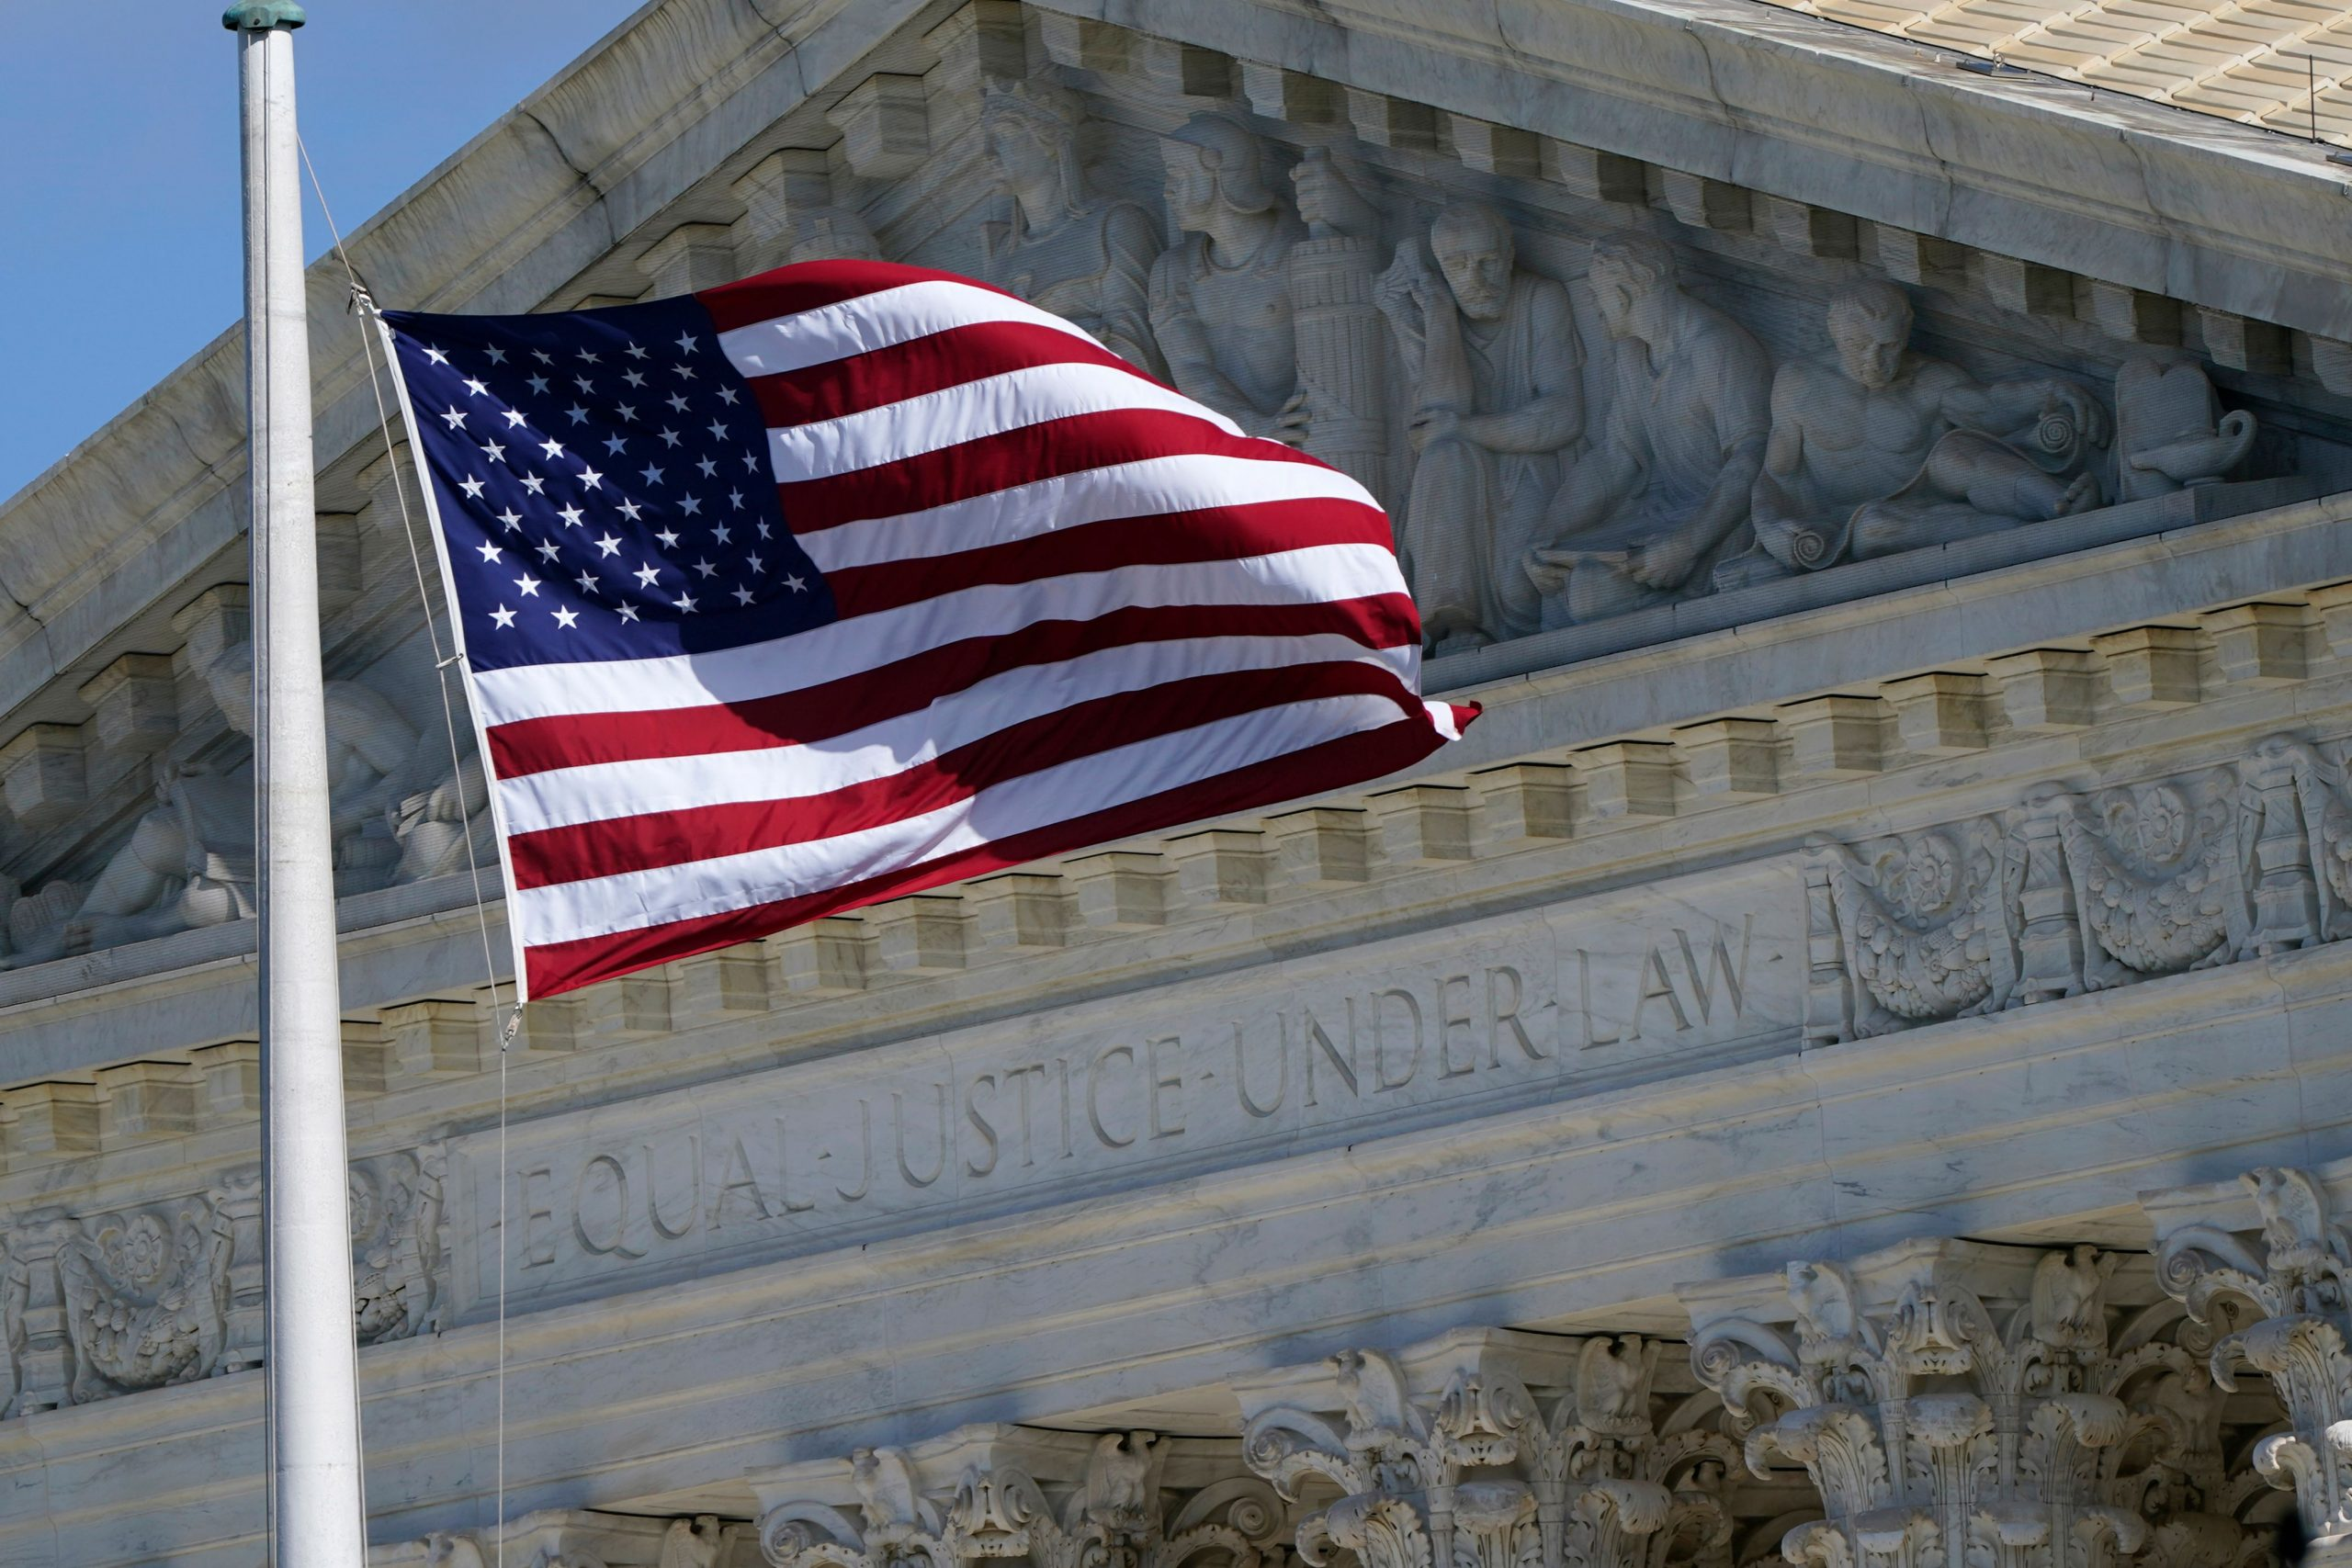 The US Flag is seen as the nations colours of red, white, and blue. With 50 white stars on the blue and 13 red and white stripes that is standing in front of the Supreme Court.